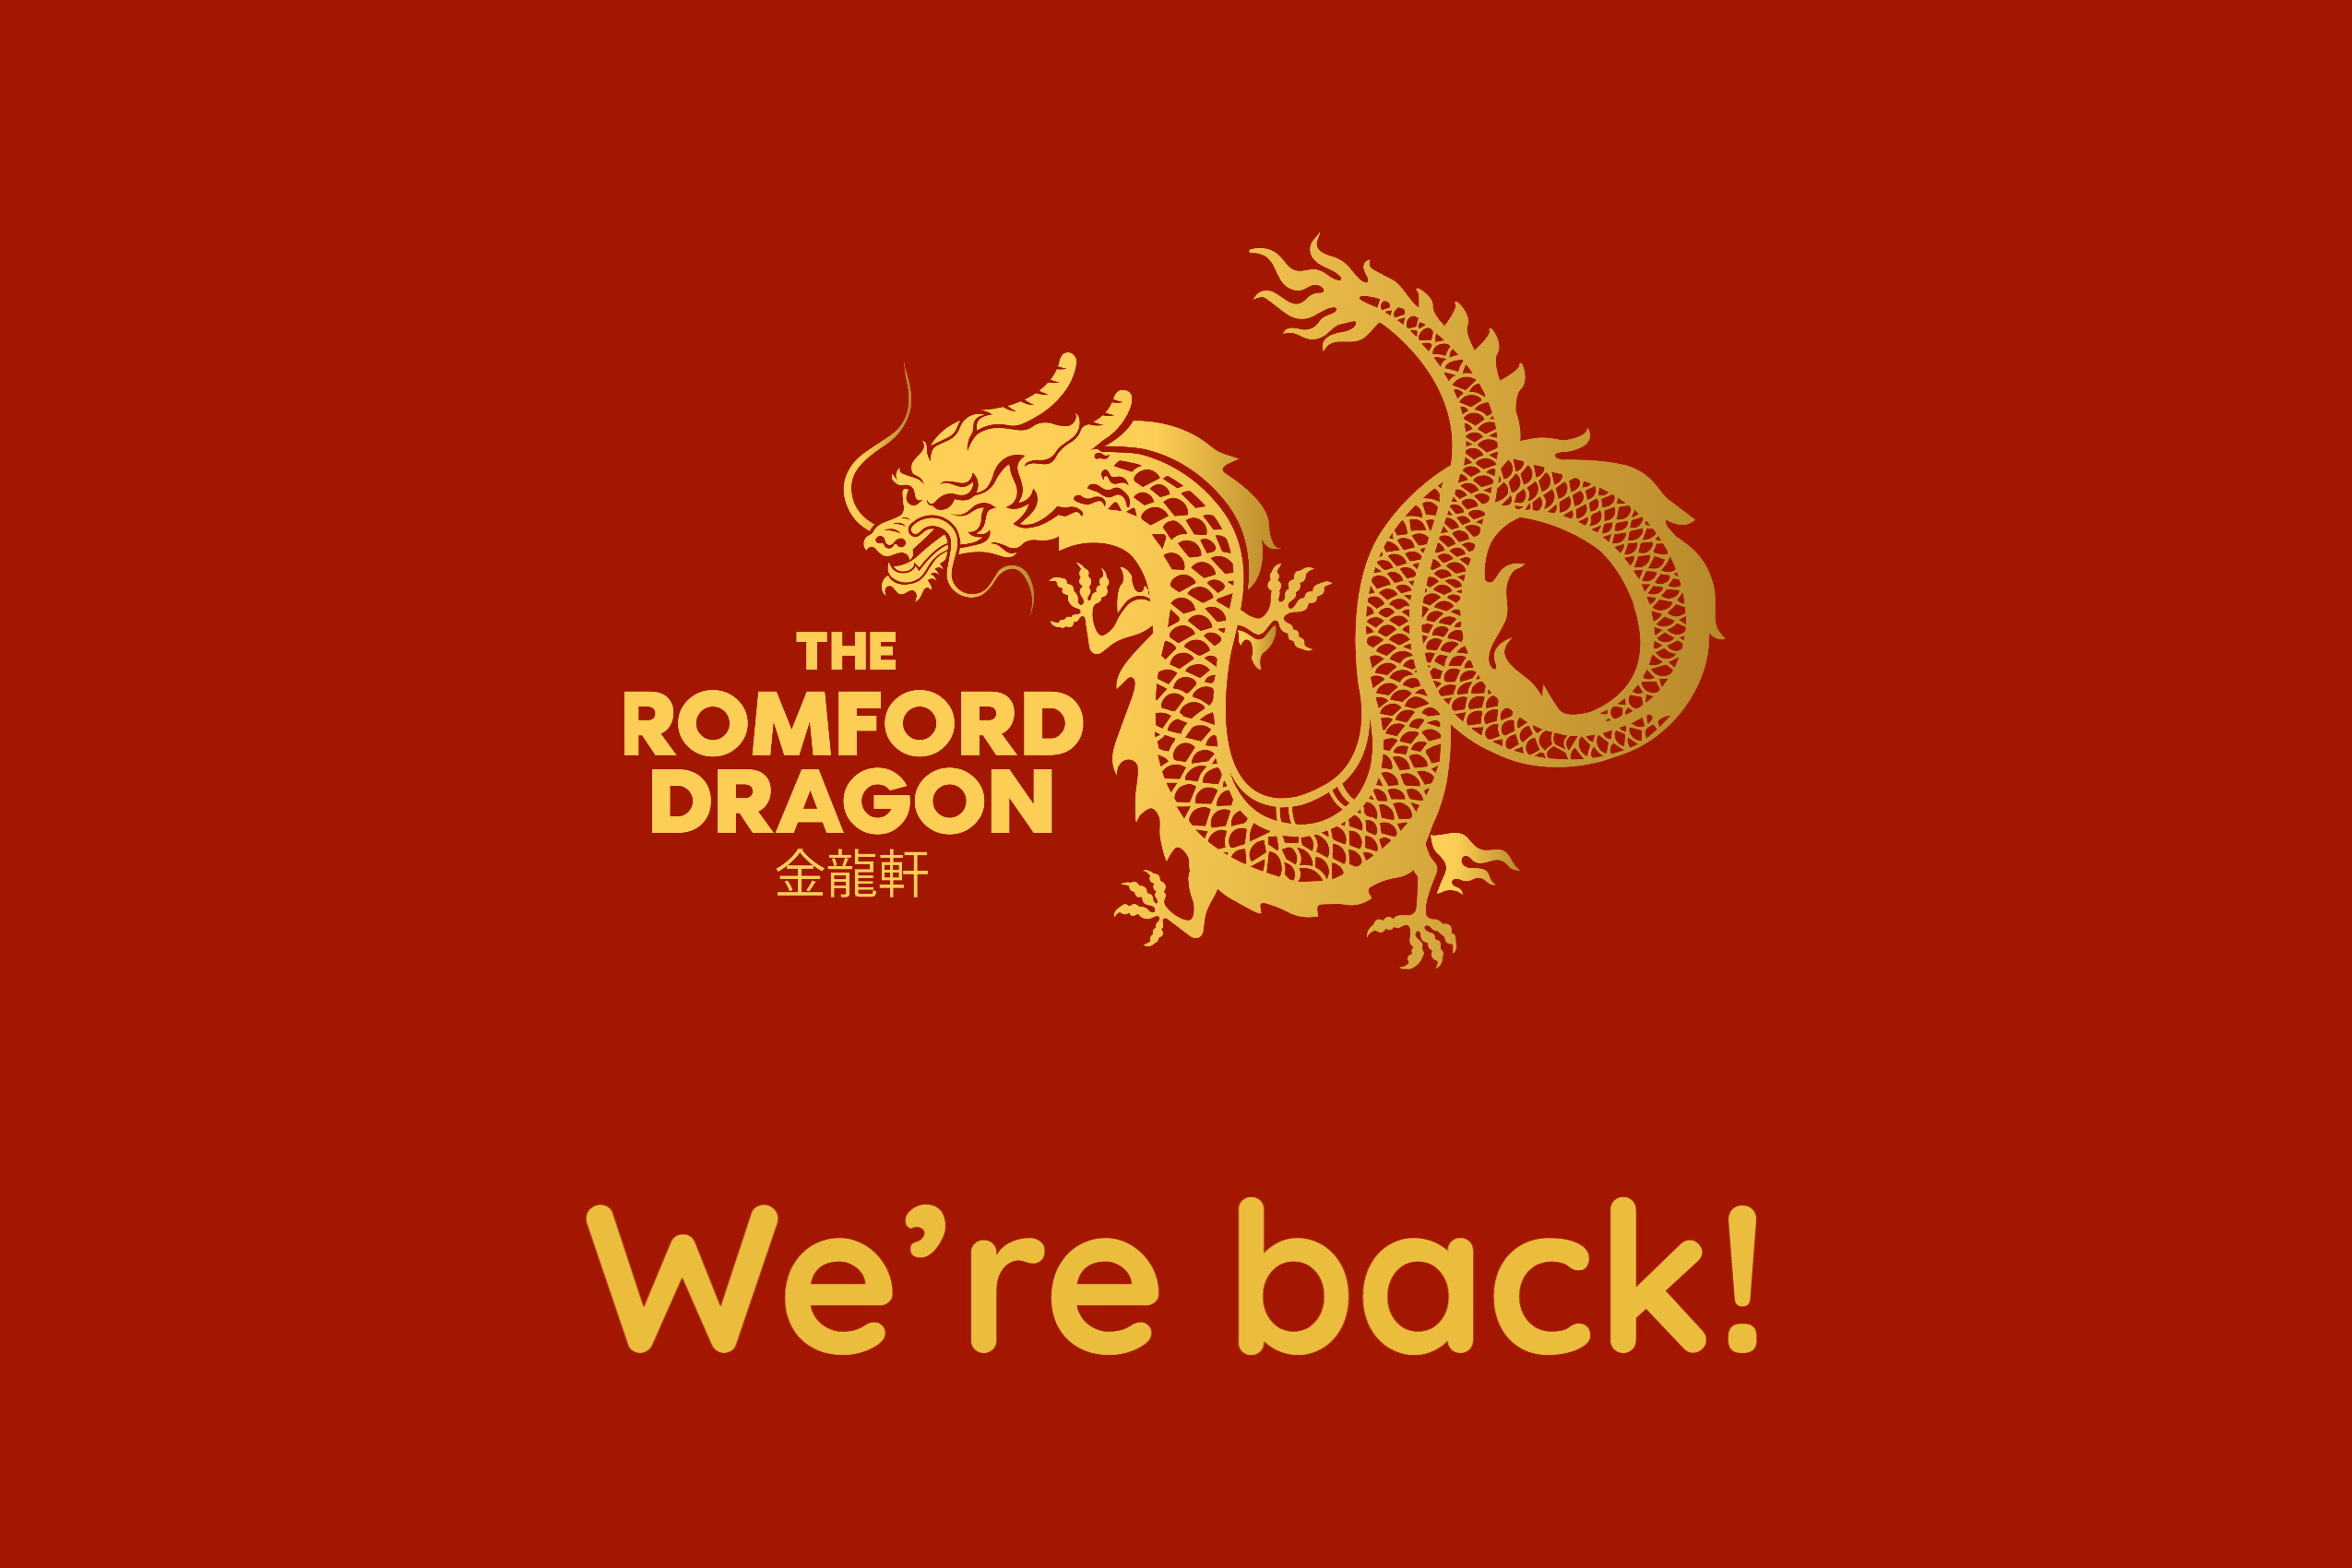 romford dragon logo - We're back! text